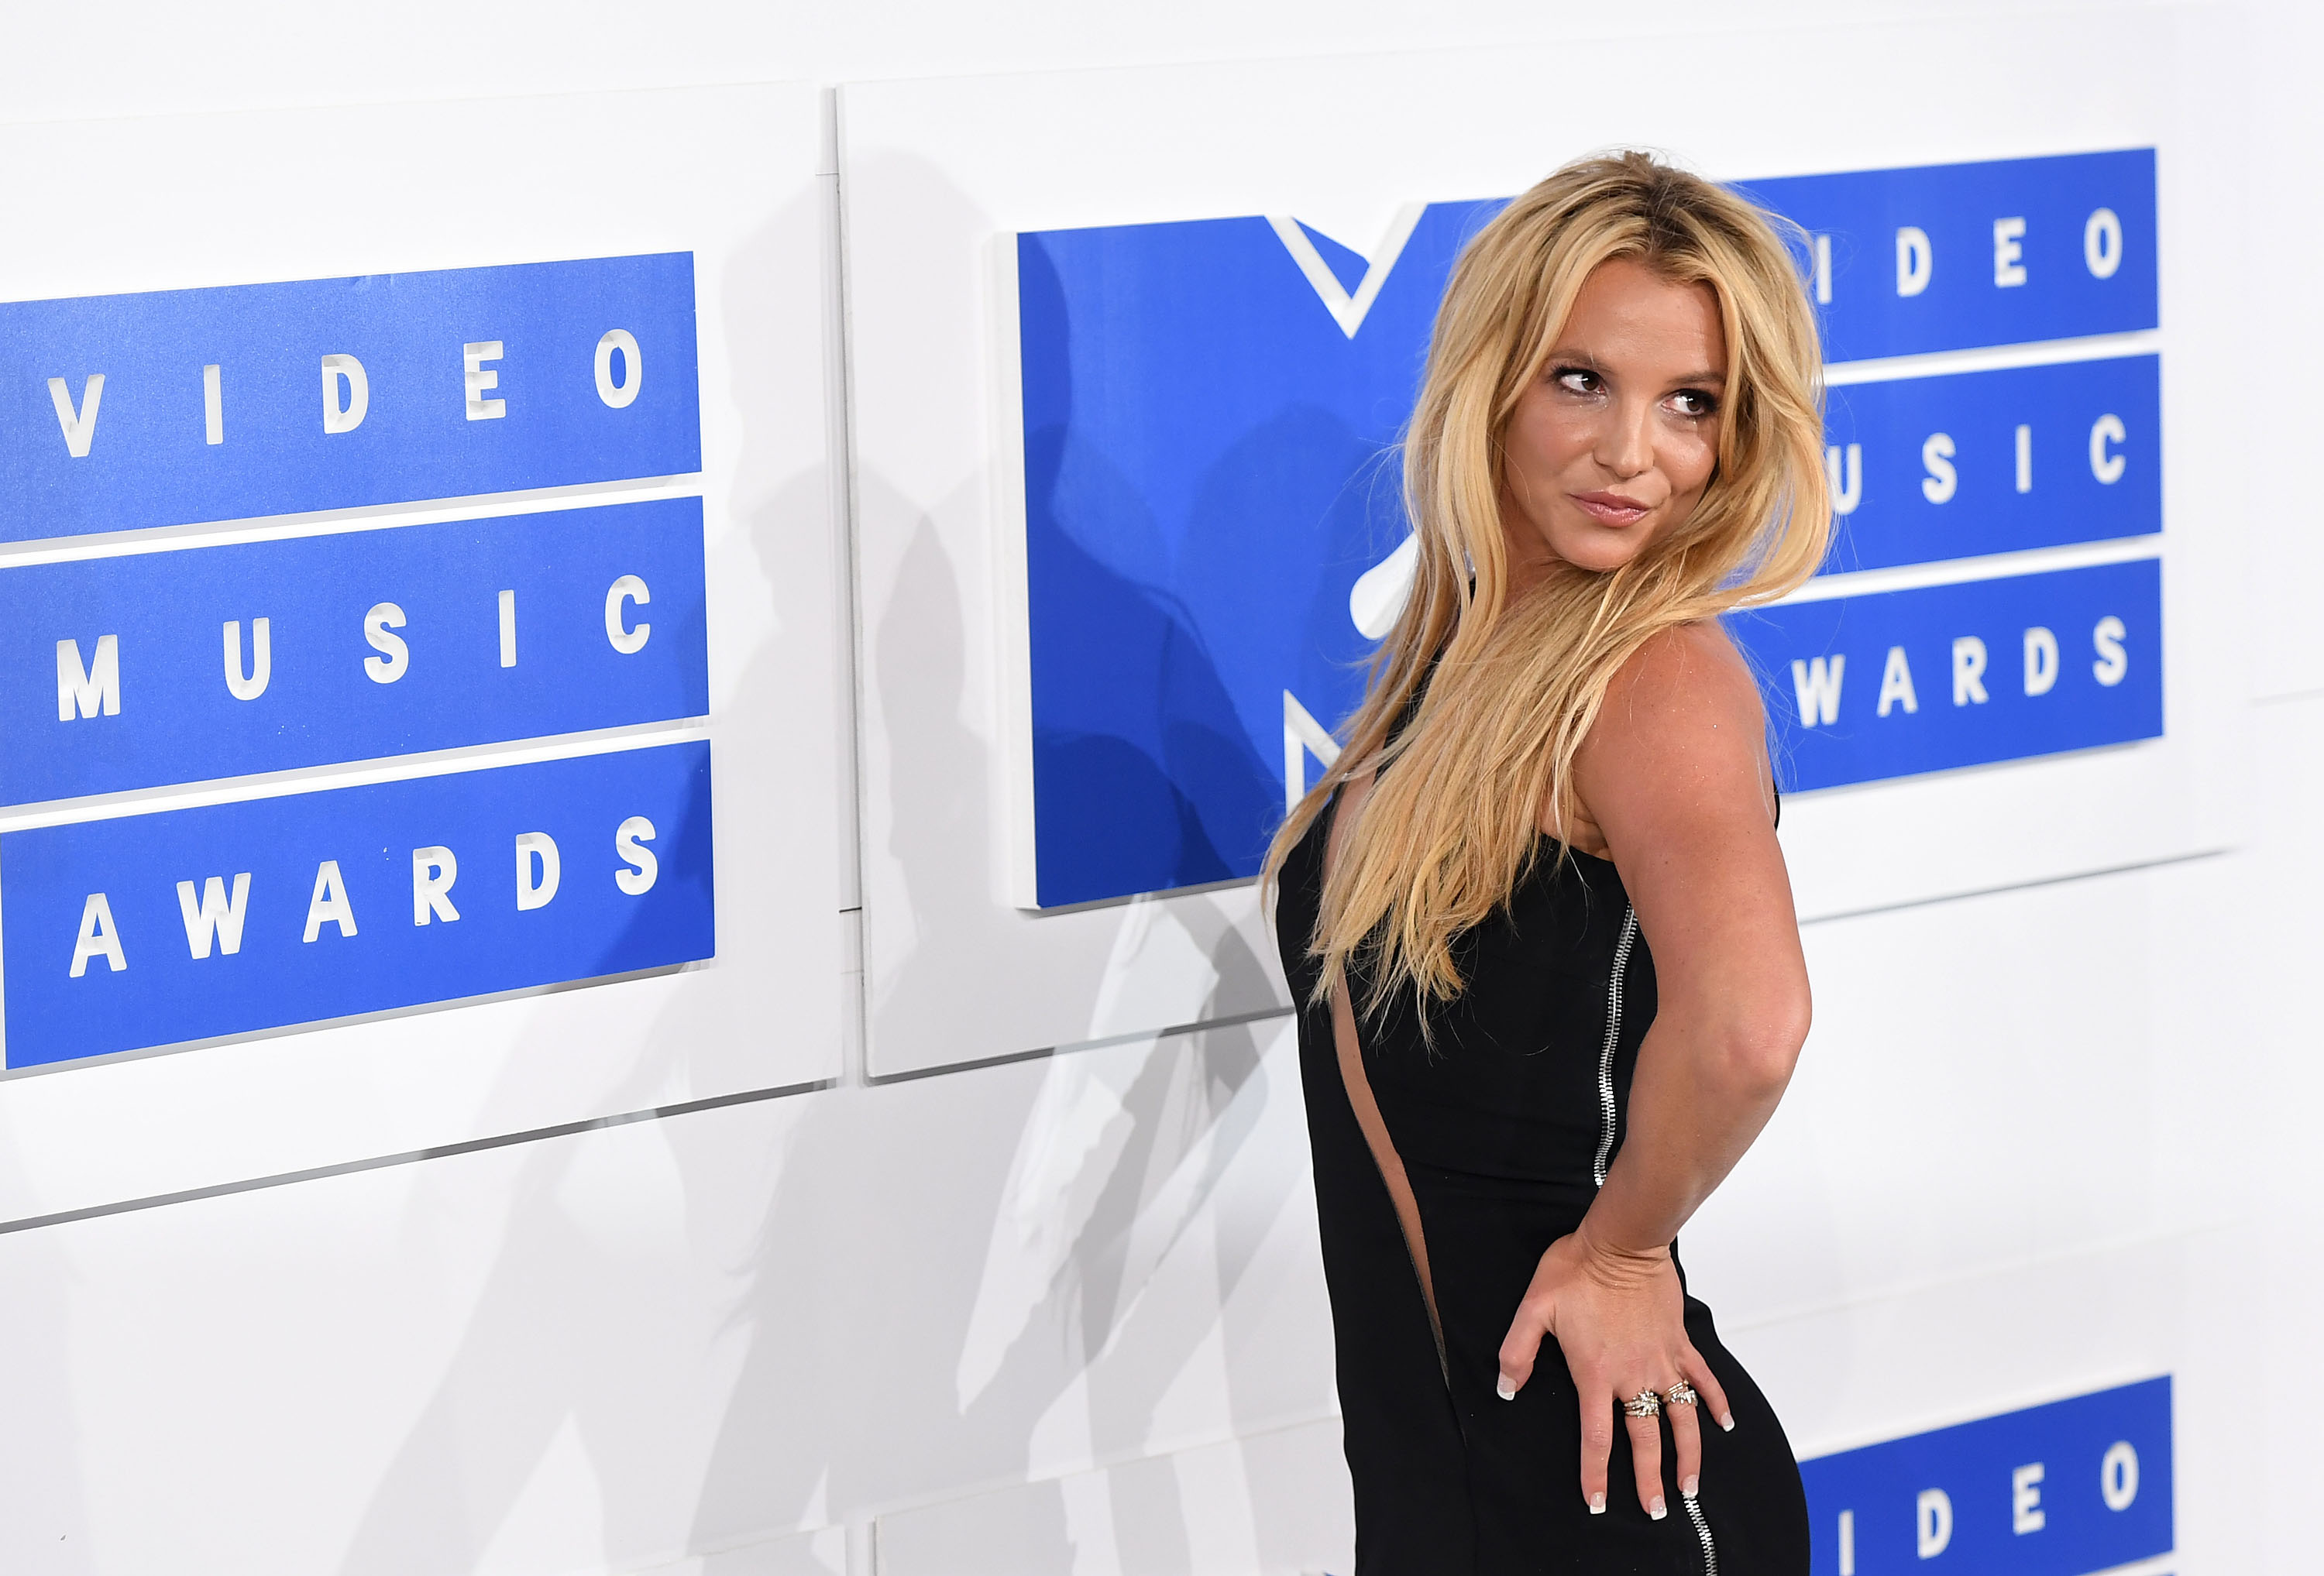 NEW YORK, NY - AUGUST 28:  Singer Britney Spears attends the 2016 MTV Video Music Awards at Madison Square Garden on August 28, 2016 in New York City.  (Photo by C Flanigan/FilmMagic)